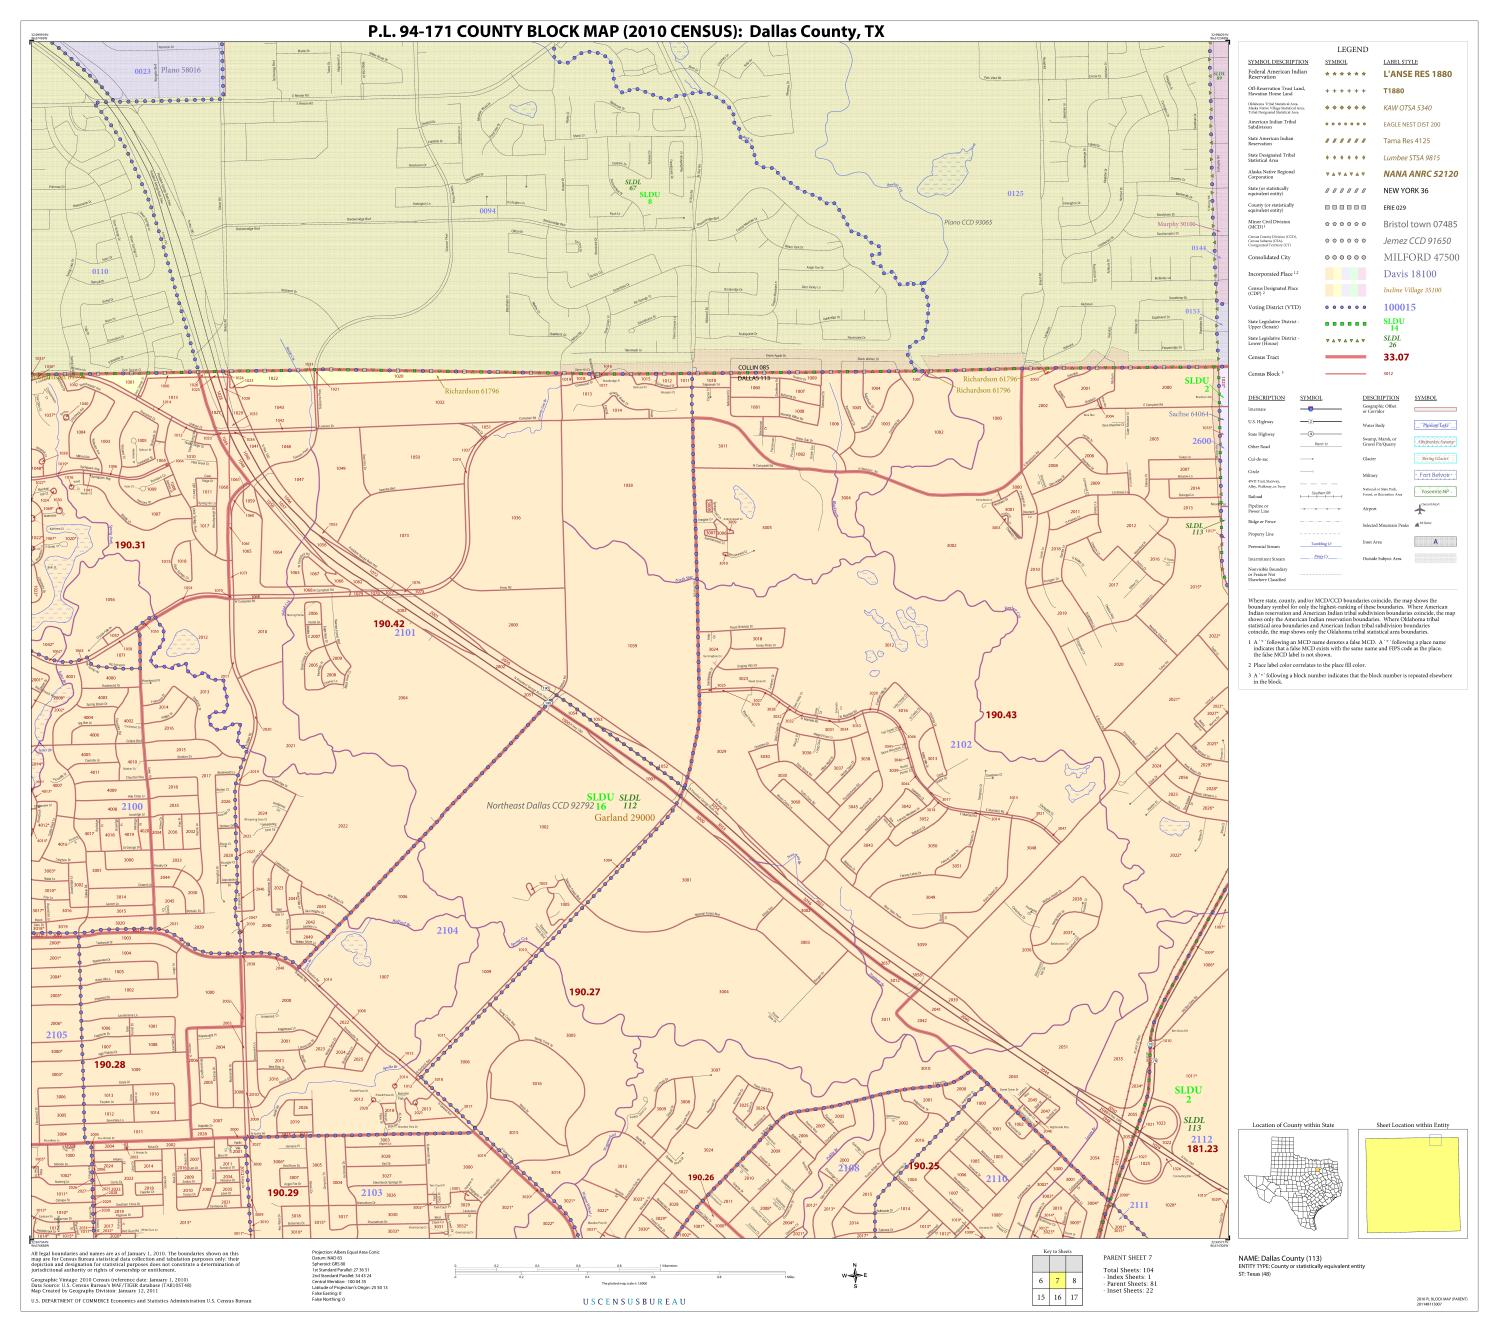 P.L. 94-171 County Block Map (2010 Census): Dallas County, Block 7                                                                                                      [Sequence #]: 1 of 1